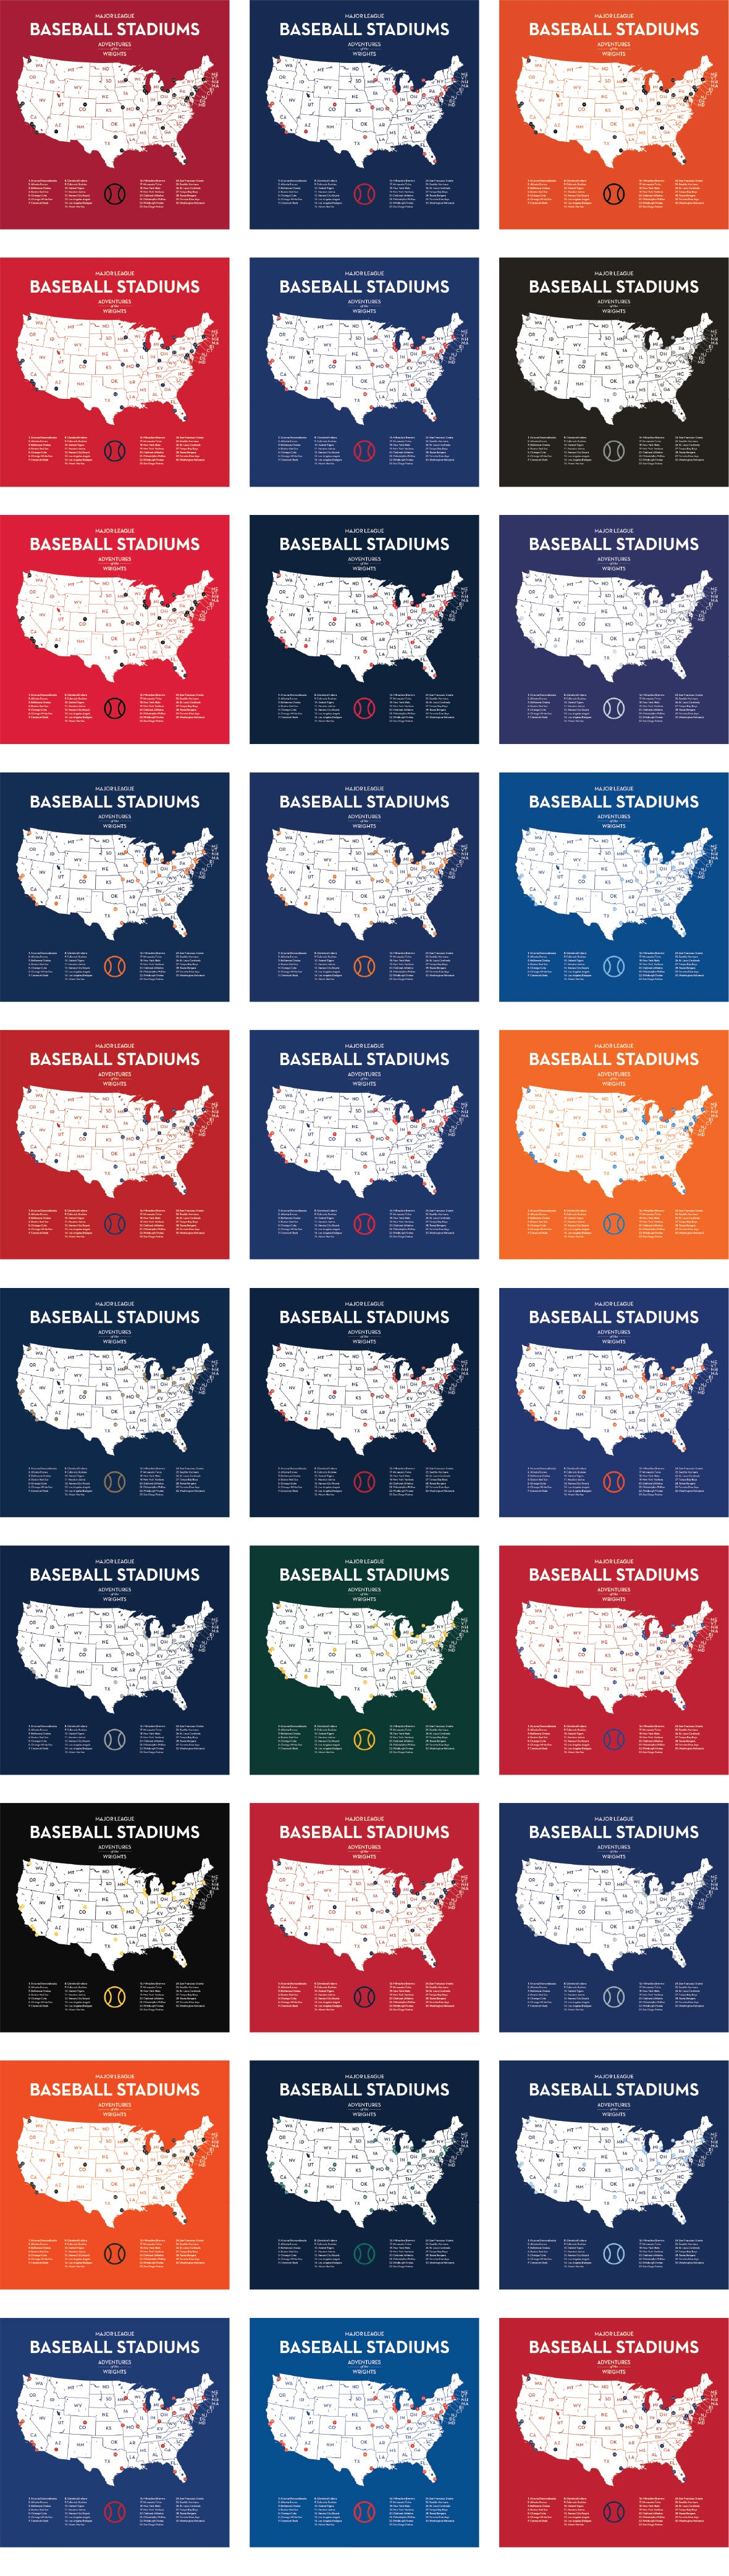 Personalized Baseball Stadium Ballpark Quest Maps